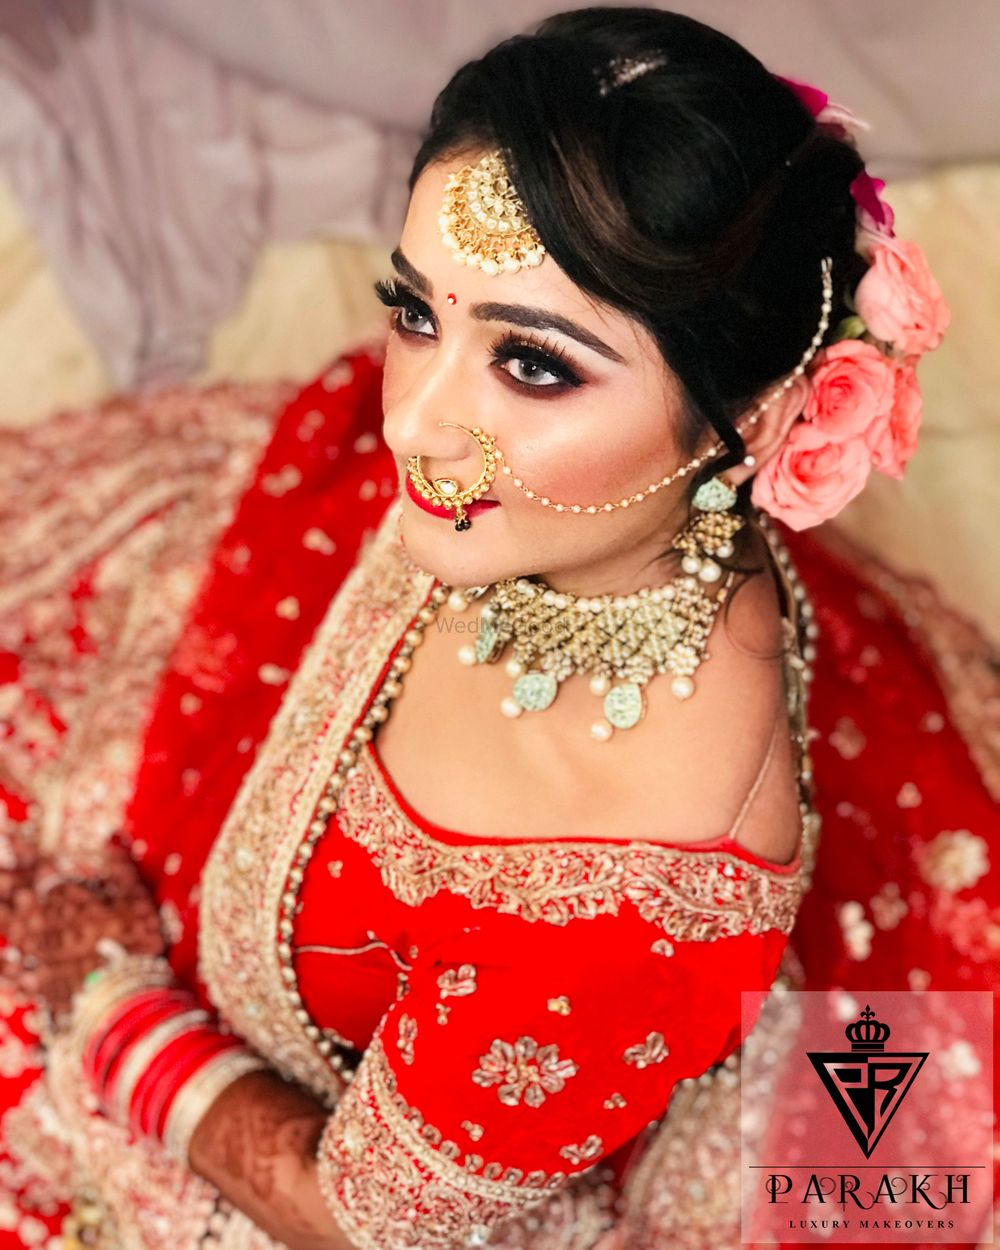 Photo From BRIDAL - By Parakh Luxury Makeovers